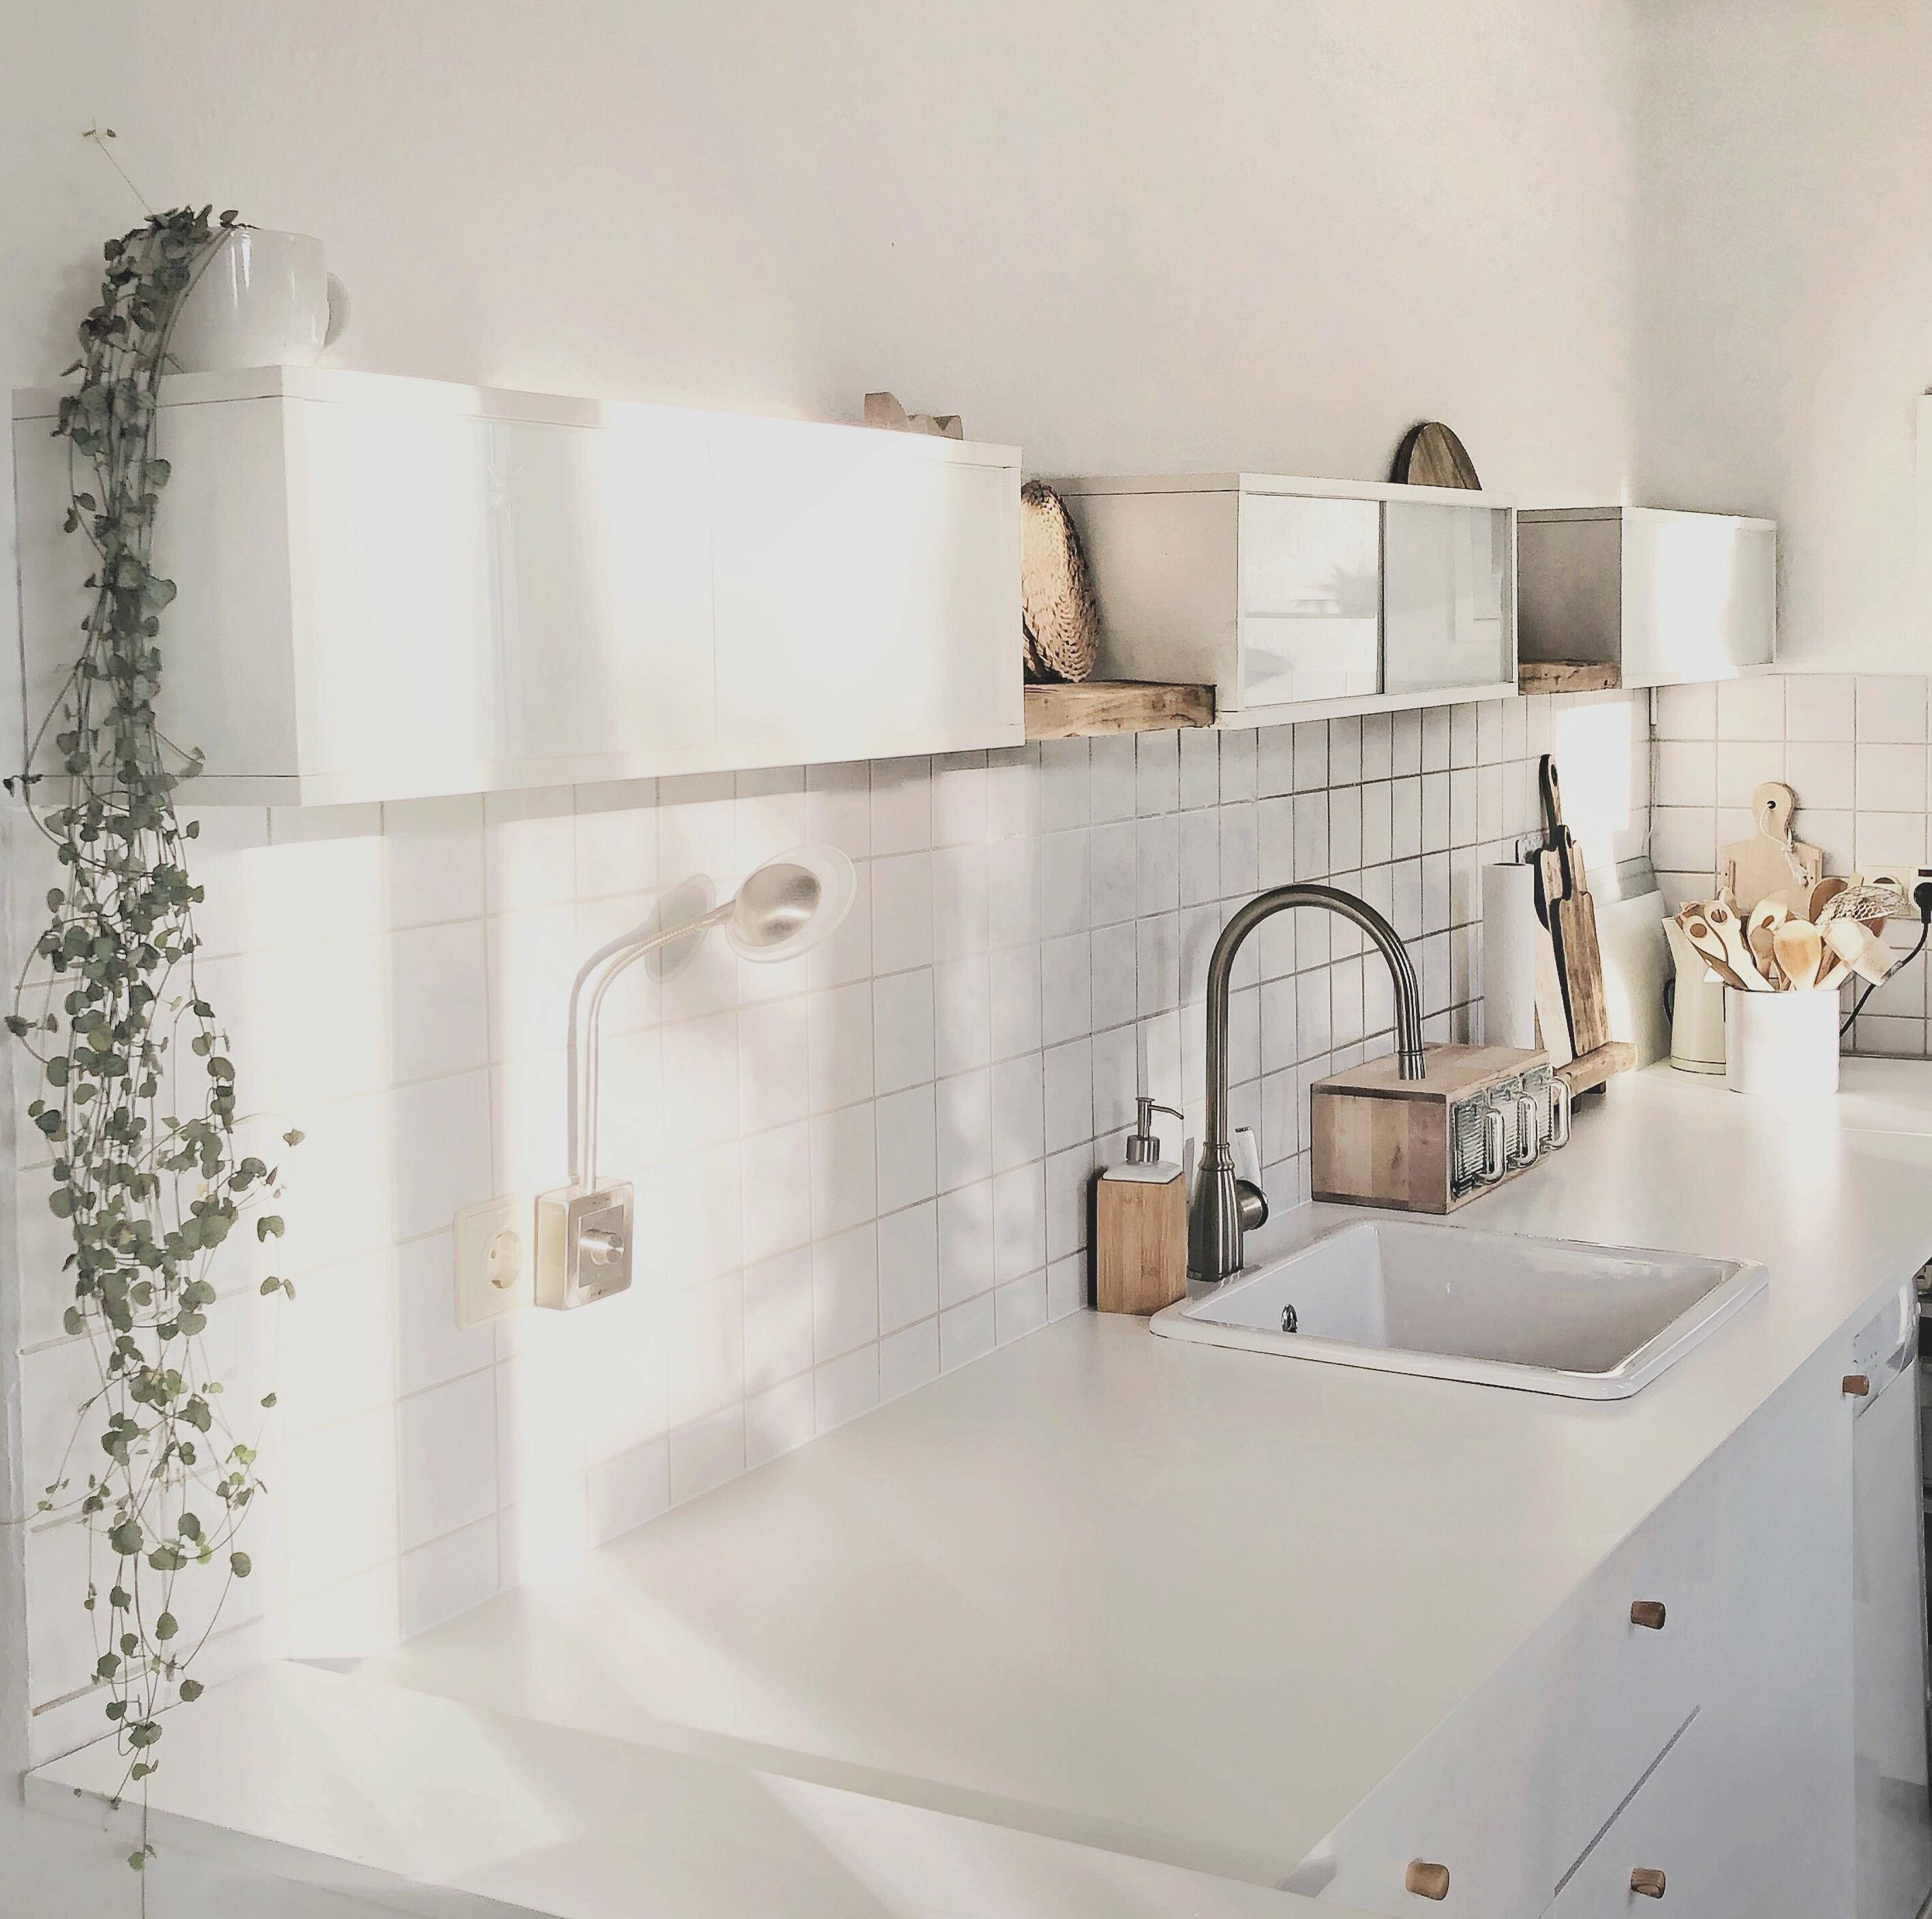 #kitchen #kitchenlove # scandihome # kitchendesign #whiteandwood